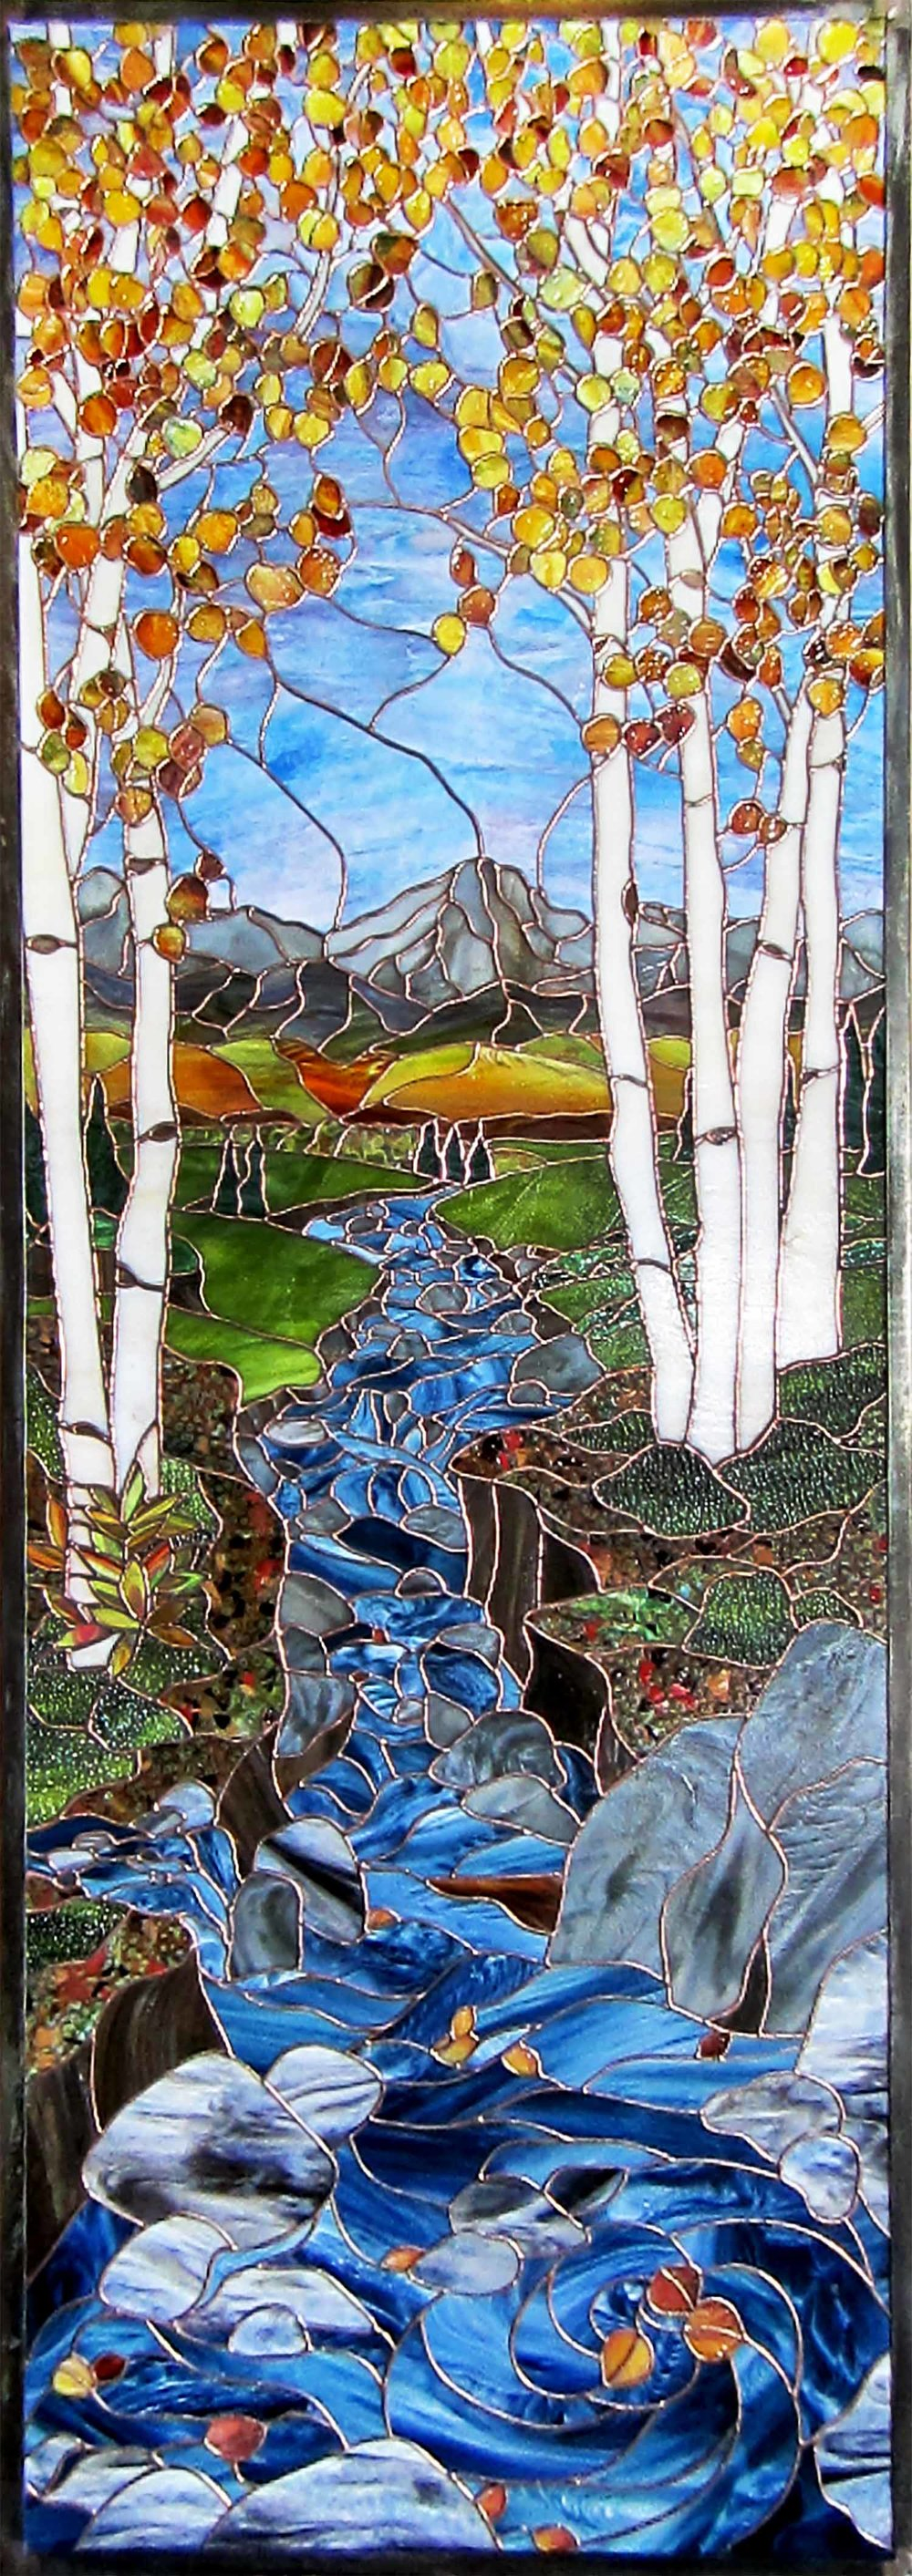 aspen tree birch creek mountain scene leaded glass stained glass studio palo alto atherton california san francisco san jose legacy glass.jpg